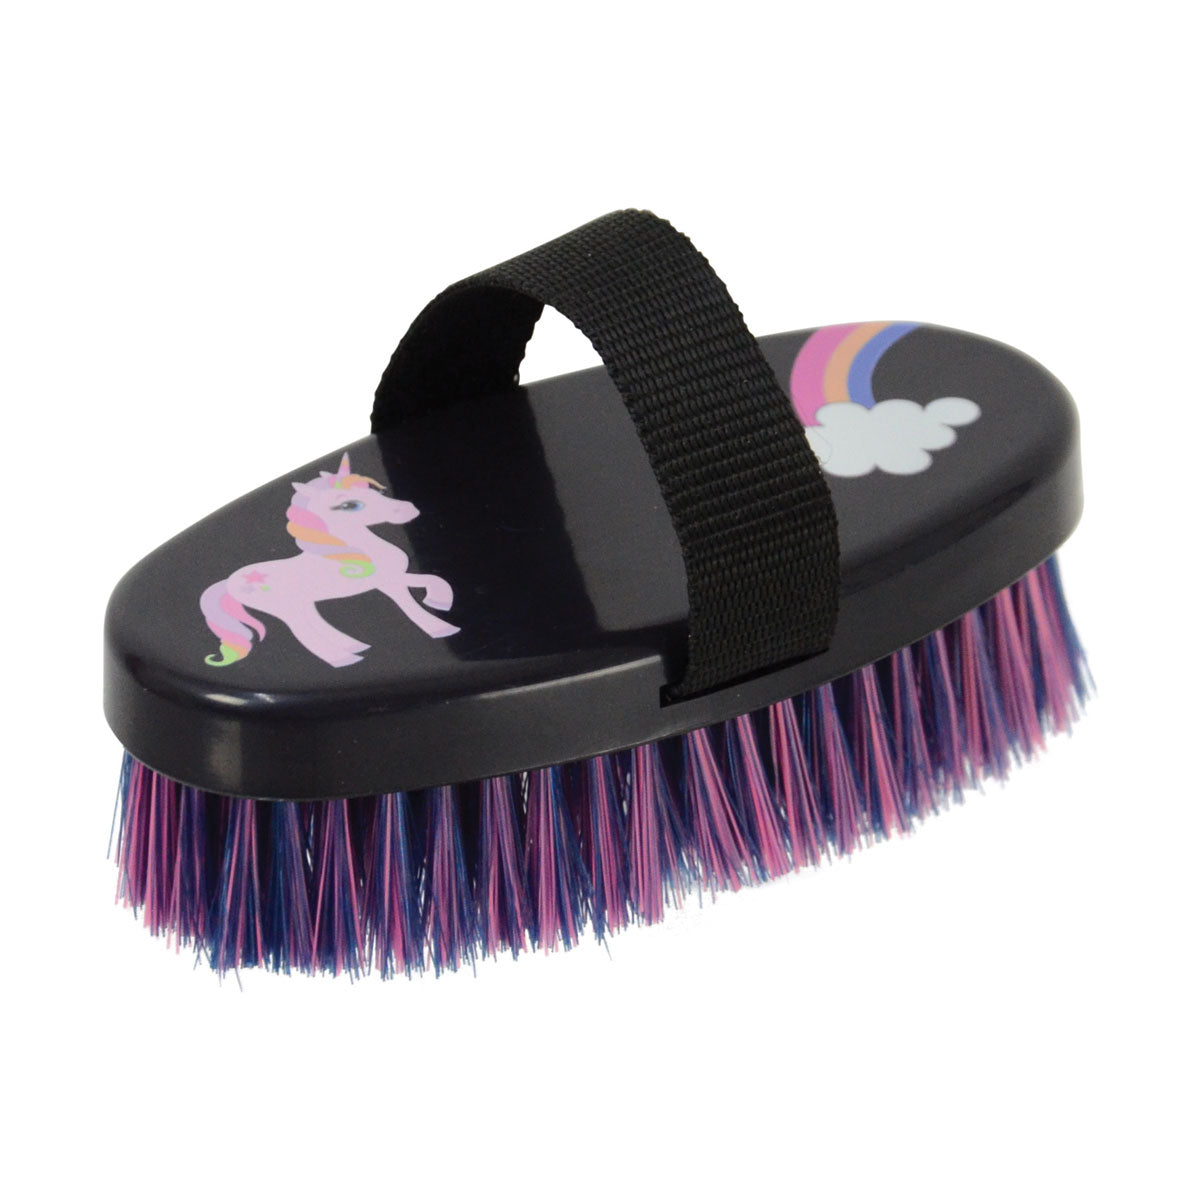 Little Rider Unicorn Body Brush